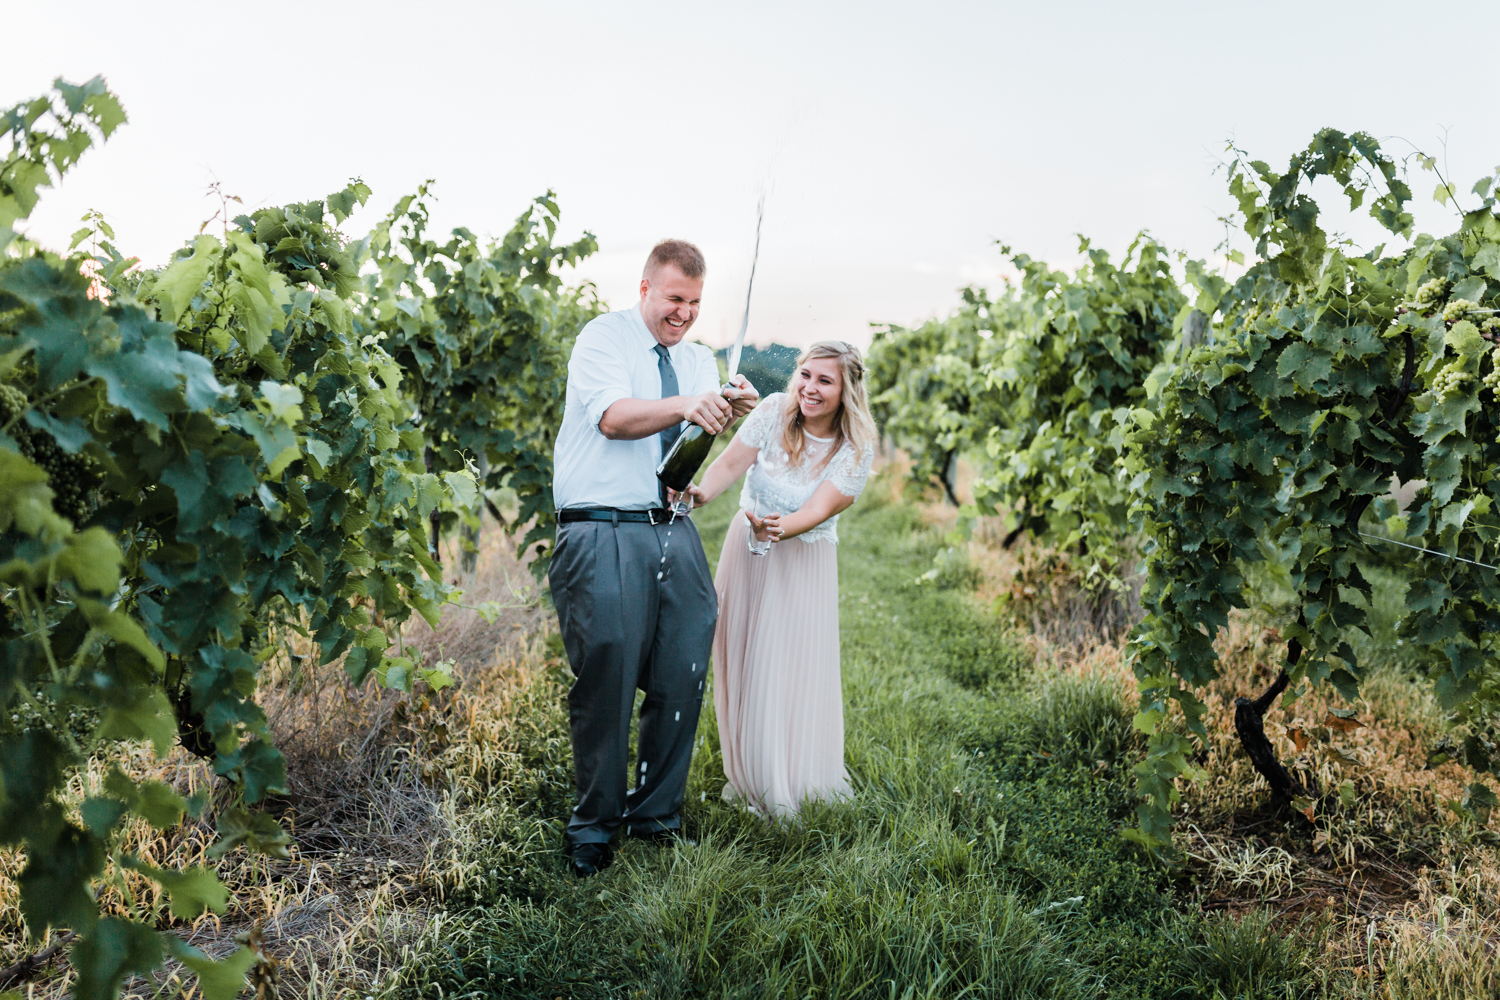 popping champagne during engagement session photos